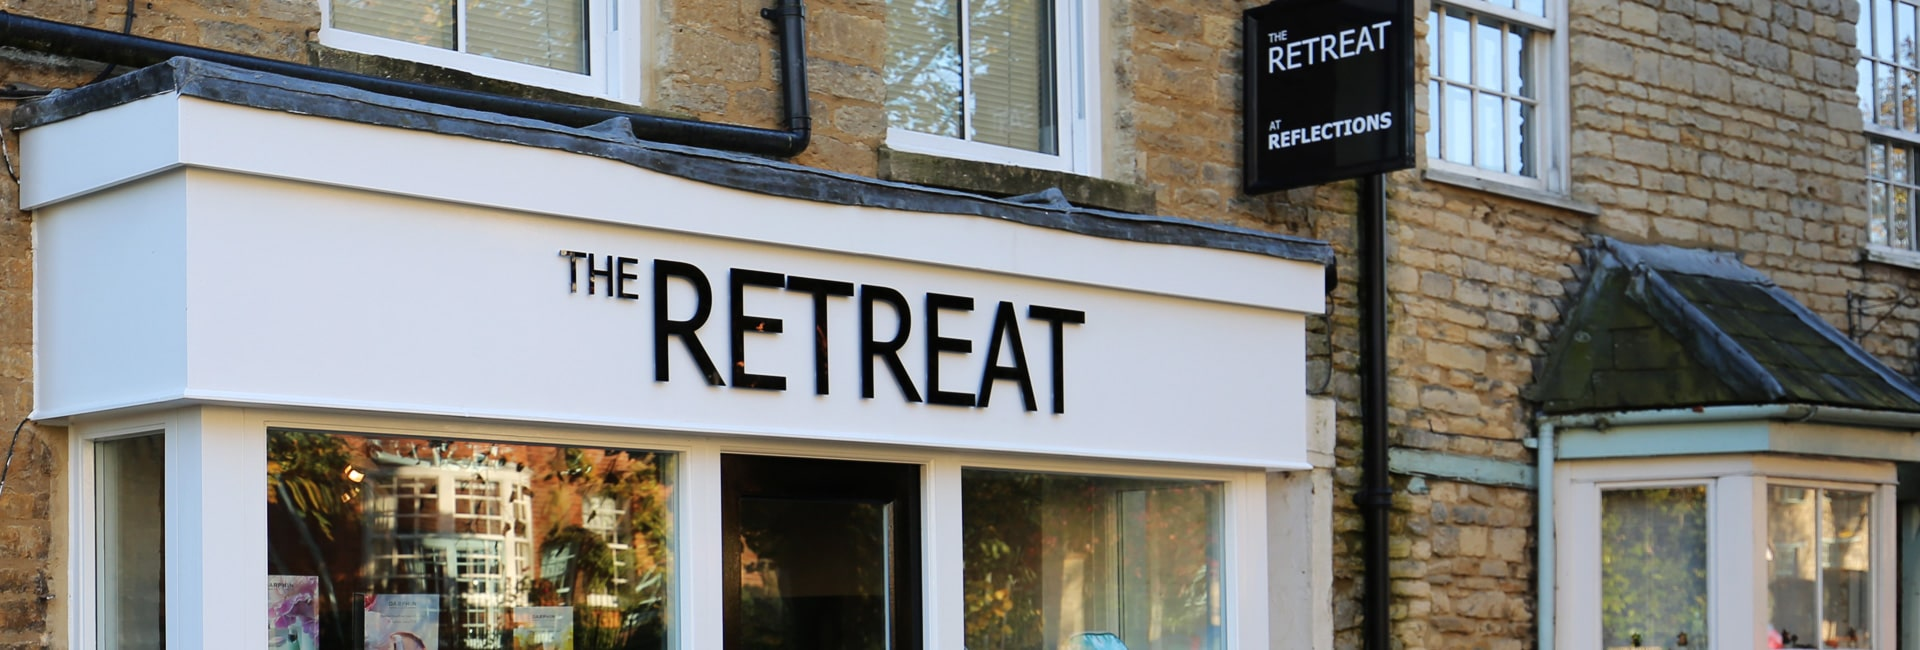 The Retreat beauty salon in Brackley